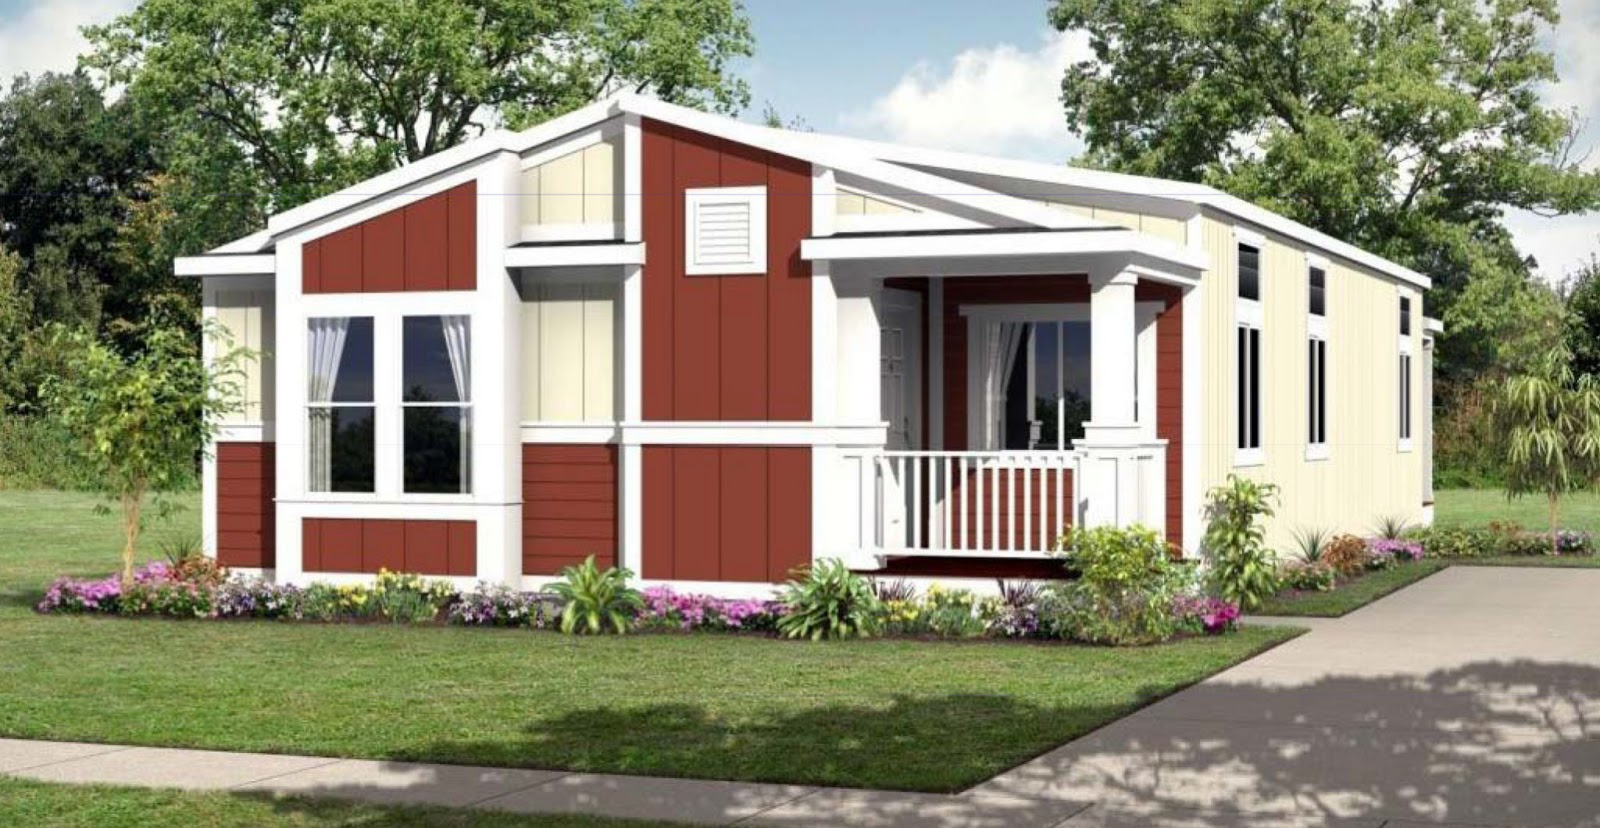 2012 manufactured housing industry awards mobile home living for Mobili horm